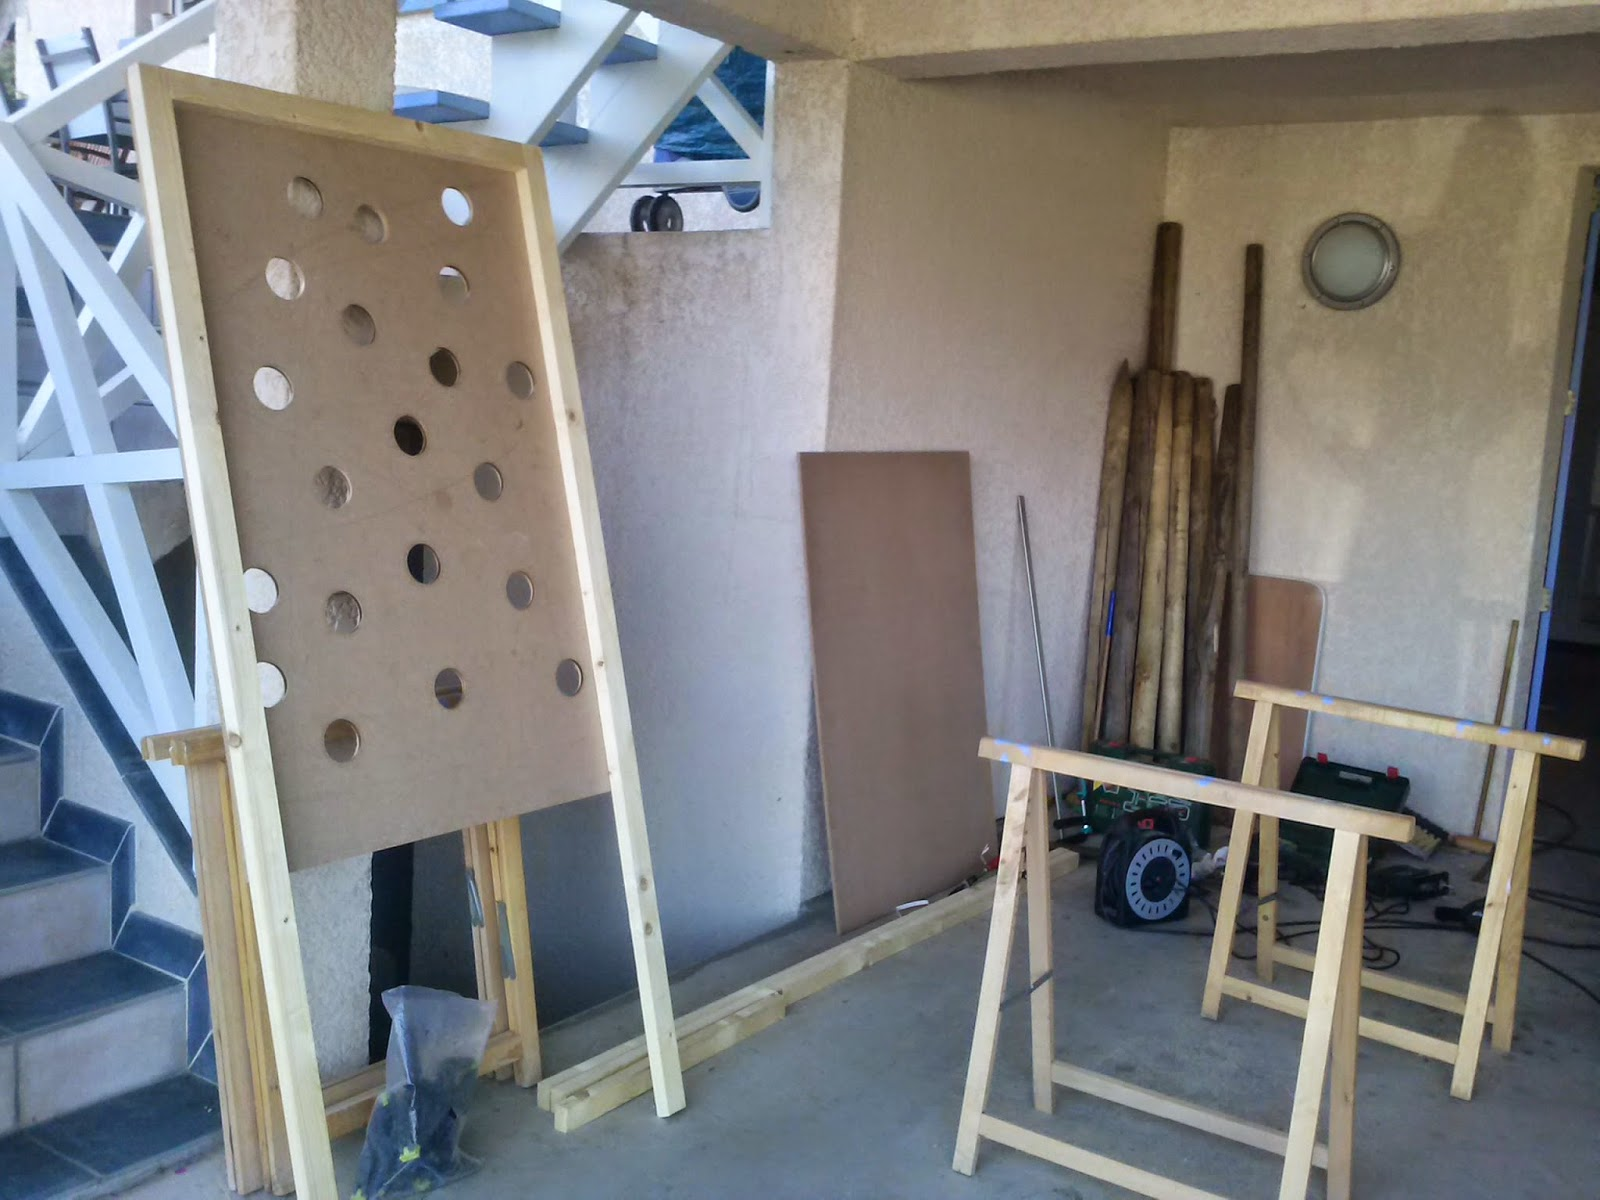 c fair play jeu en bois en cours de fabrication le remonte balle. Black Bedroom Furniture Sets. Home Design Ideas